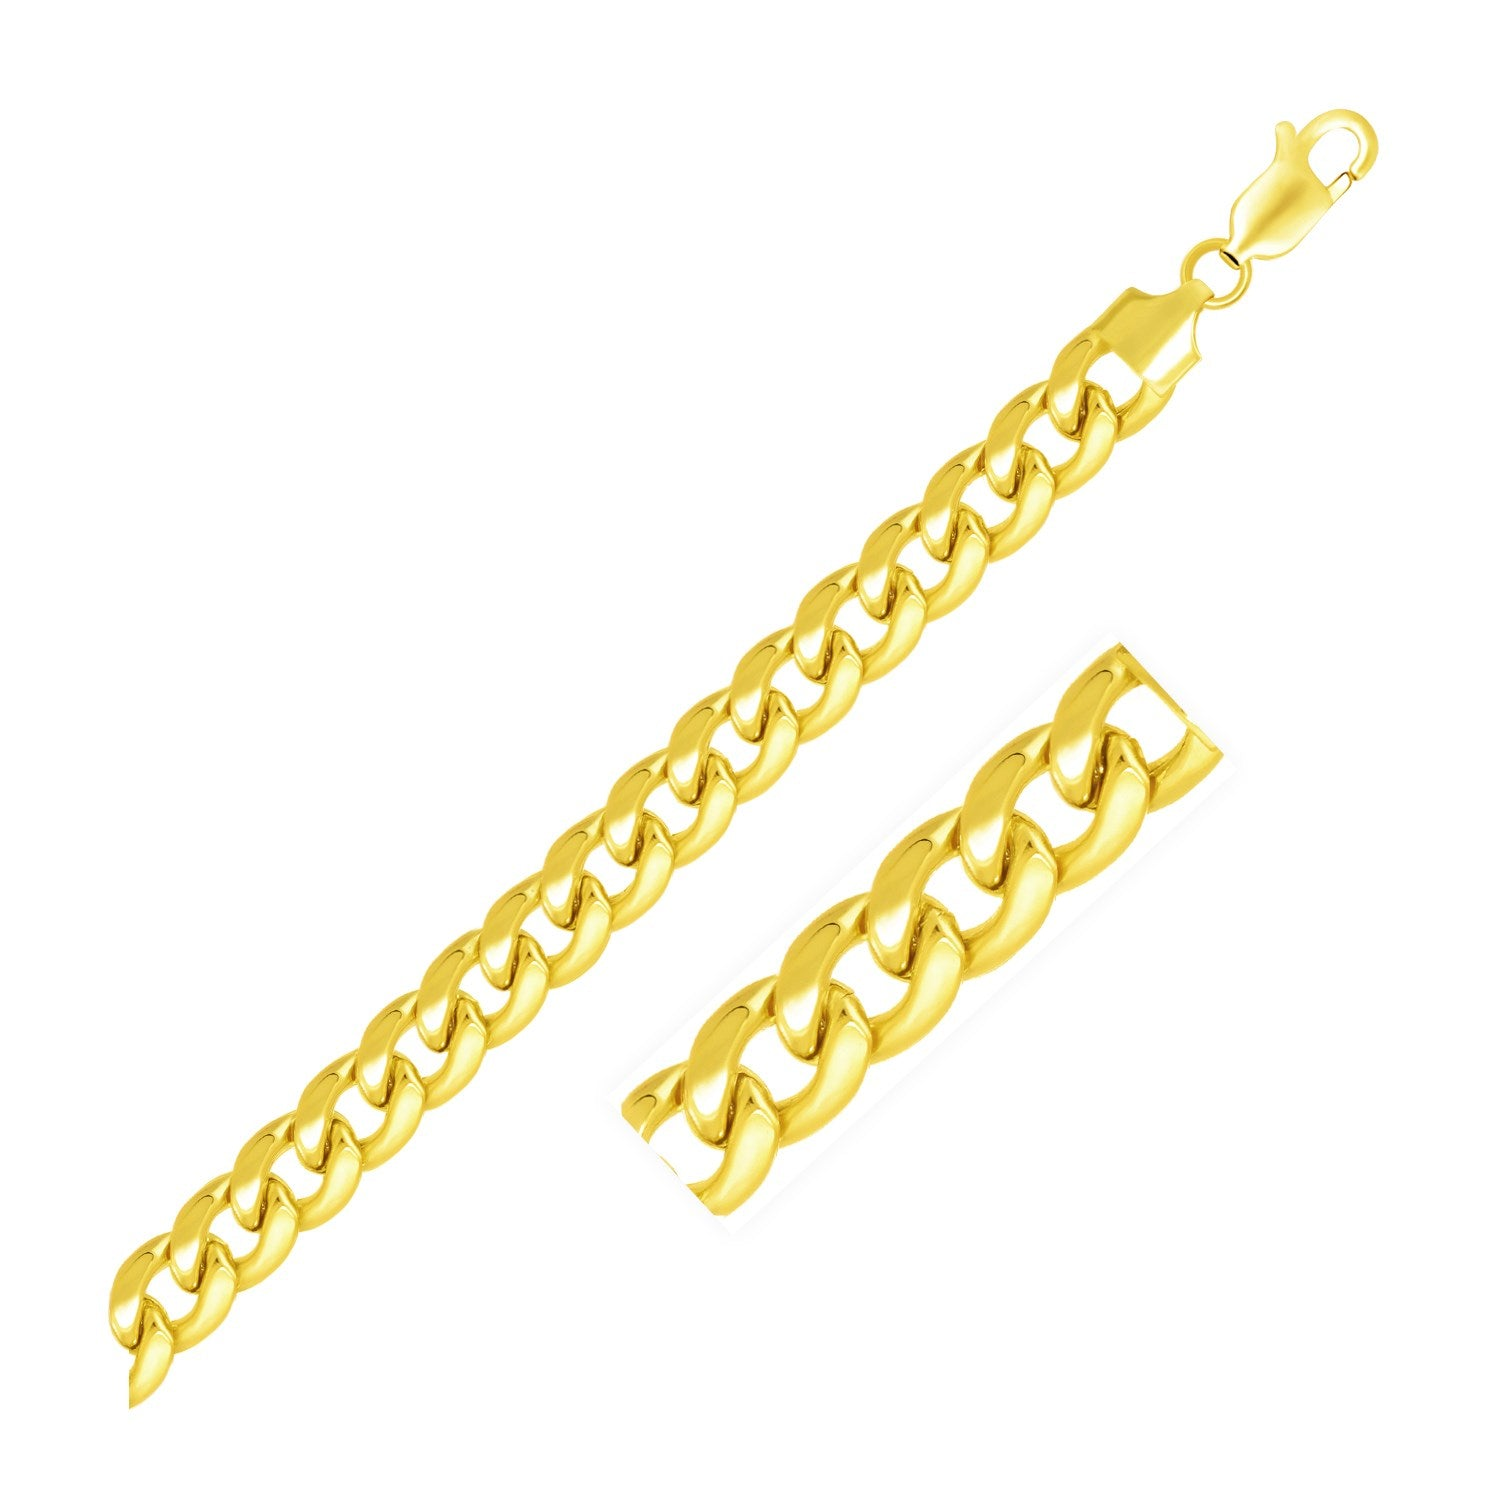 7.8mm 14K Yellow Gold Light Miami Cuban Bracelet